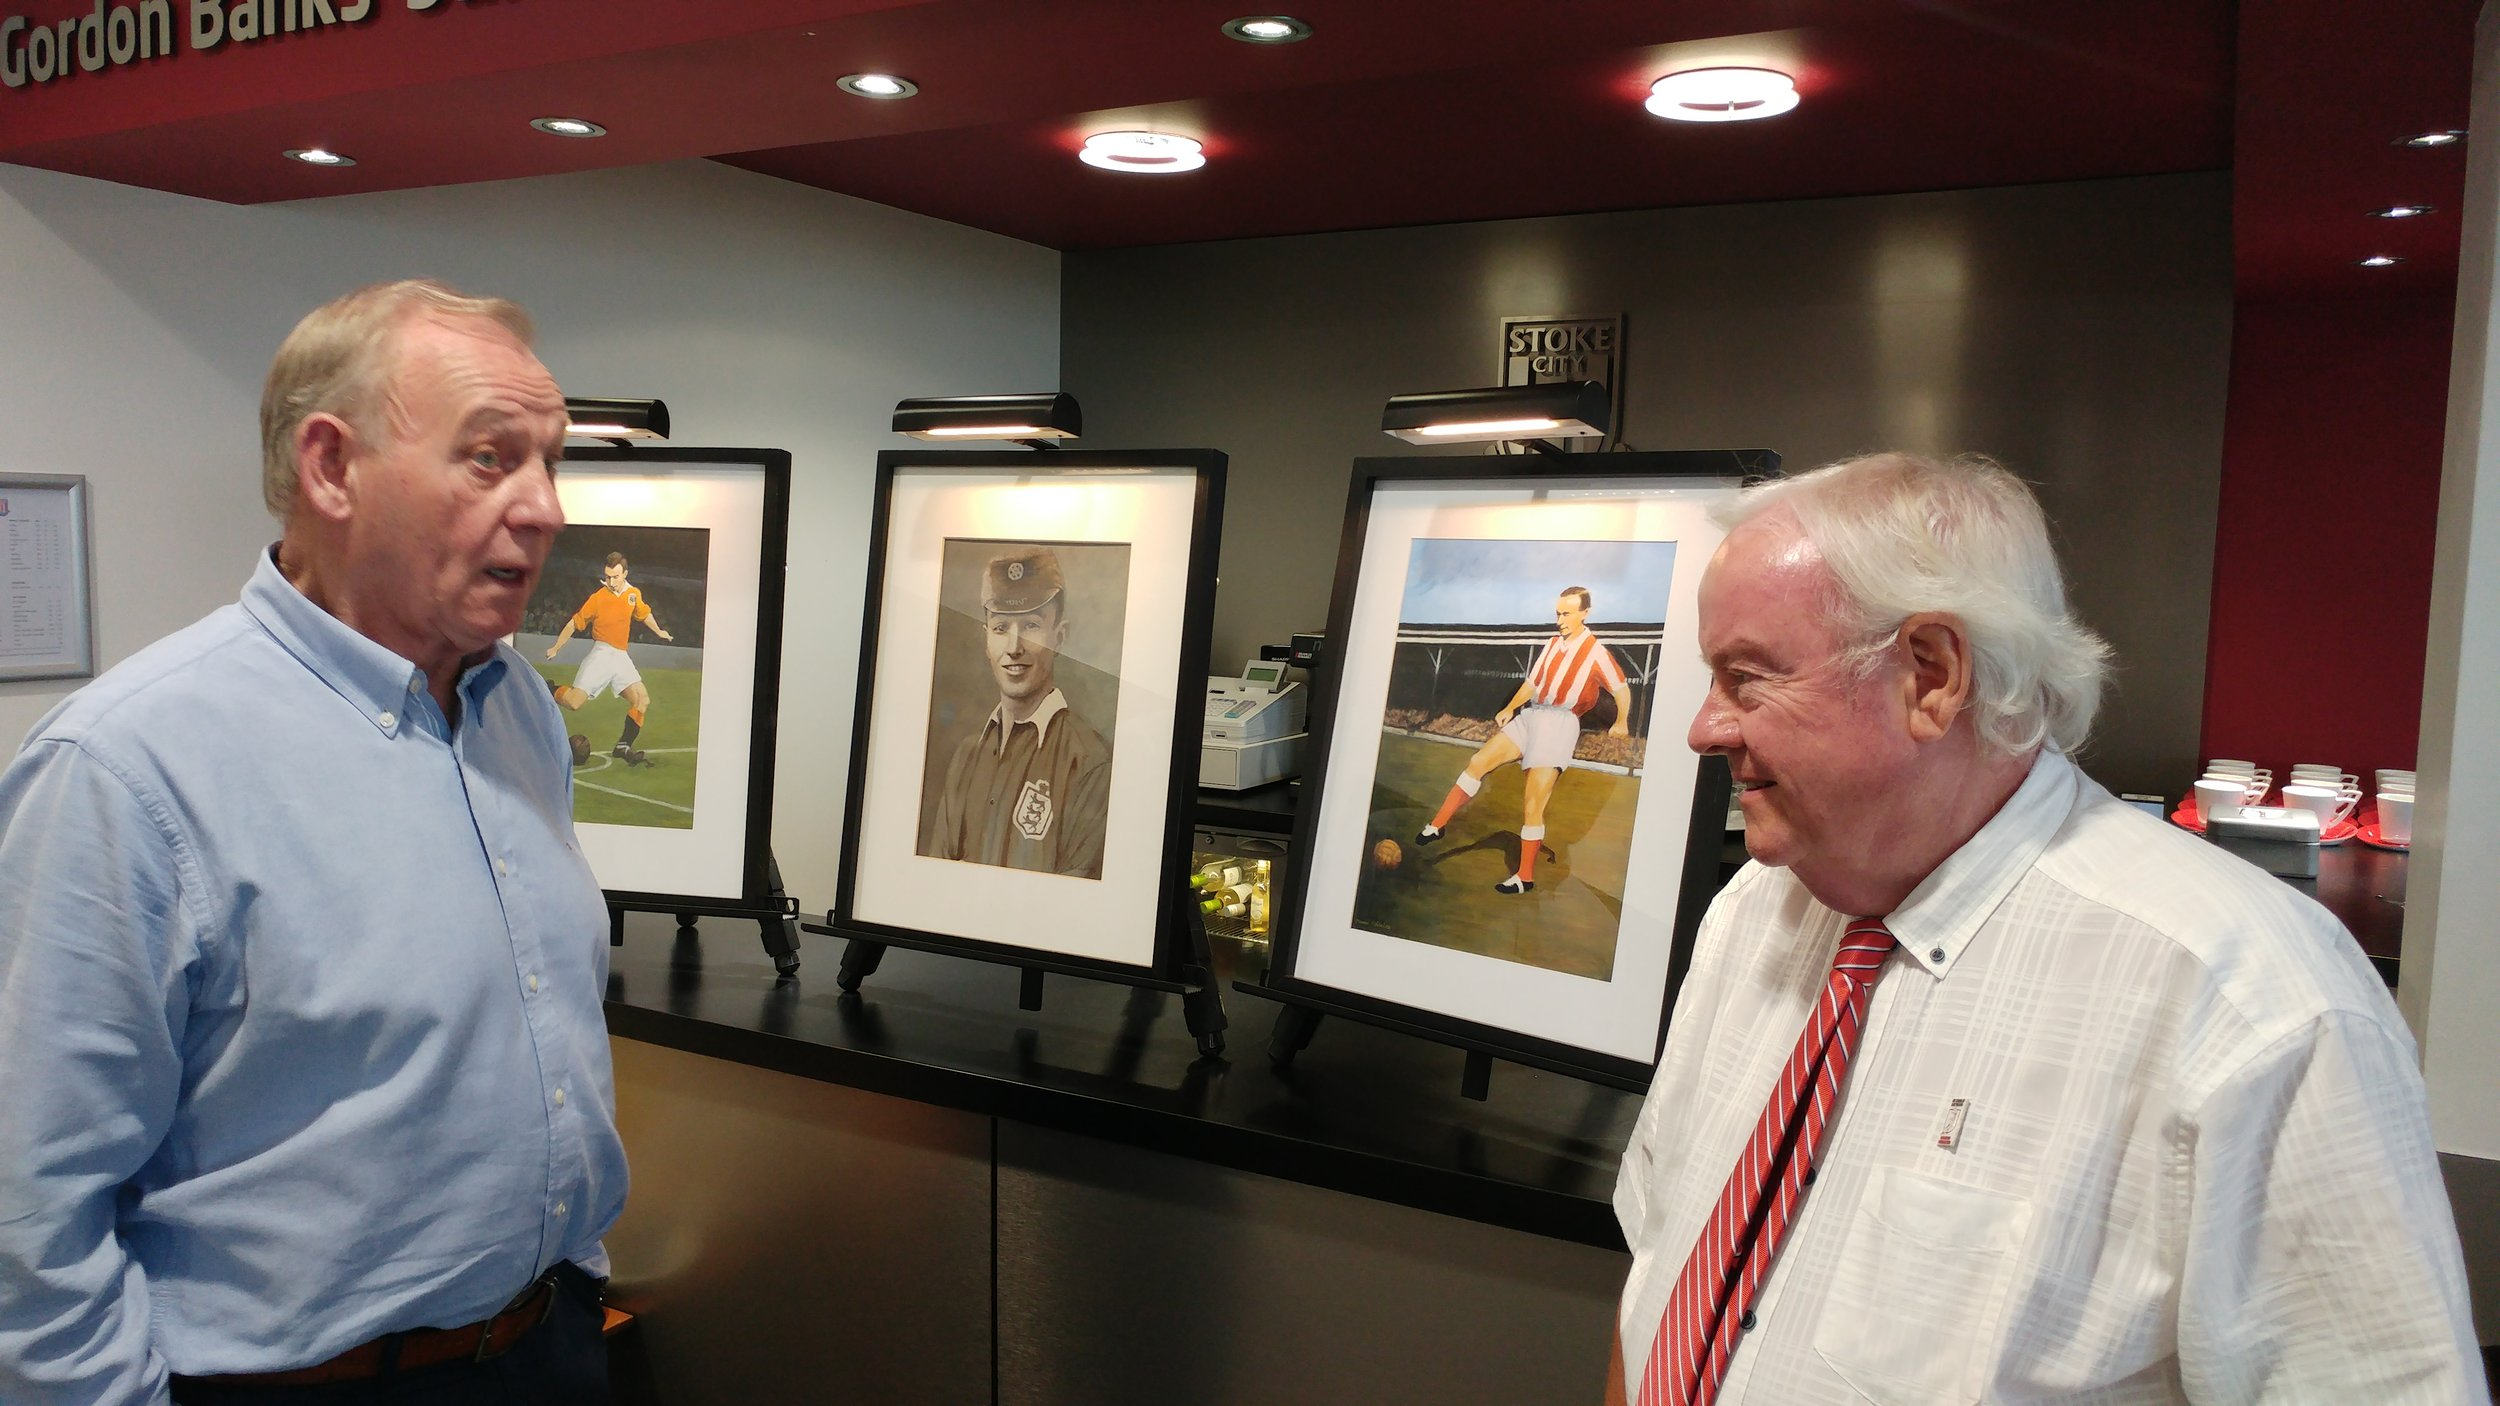 Denis Smith and Roger Horwood in conversation, in front of paintings of Sir Stanley Matthews by local artist Muriel Valentine